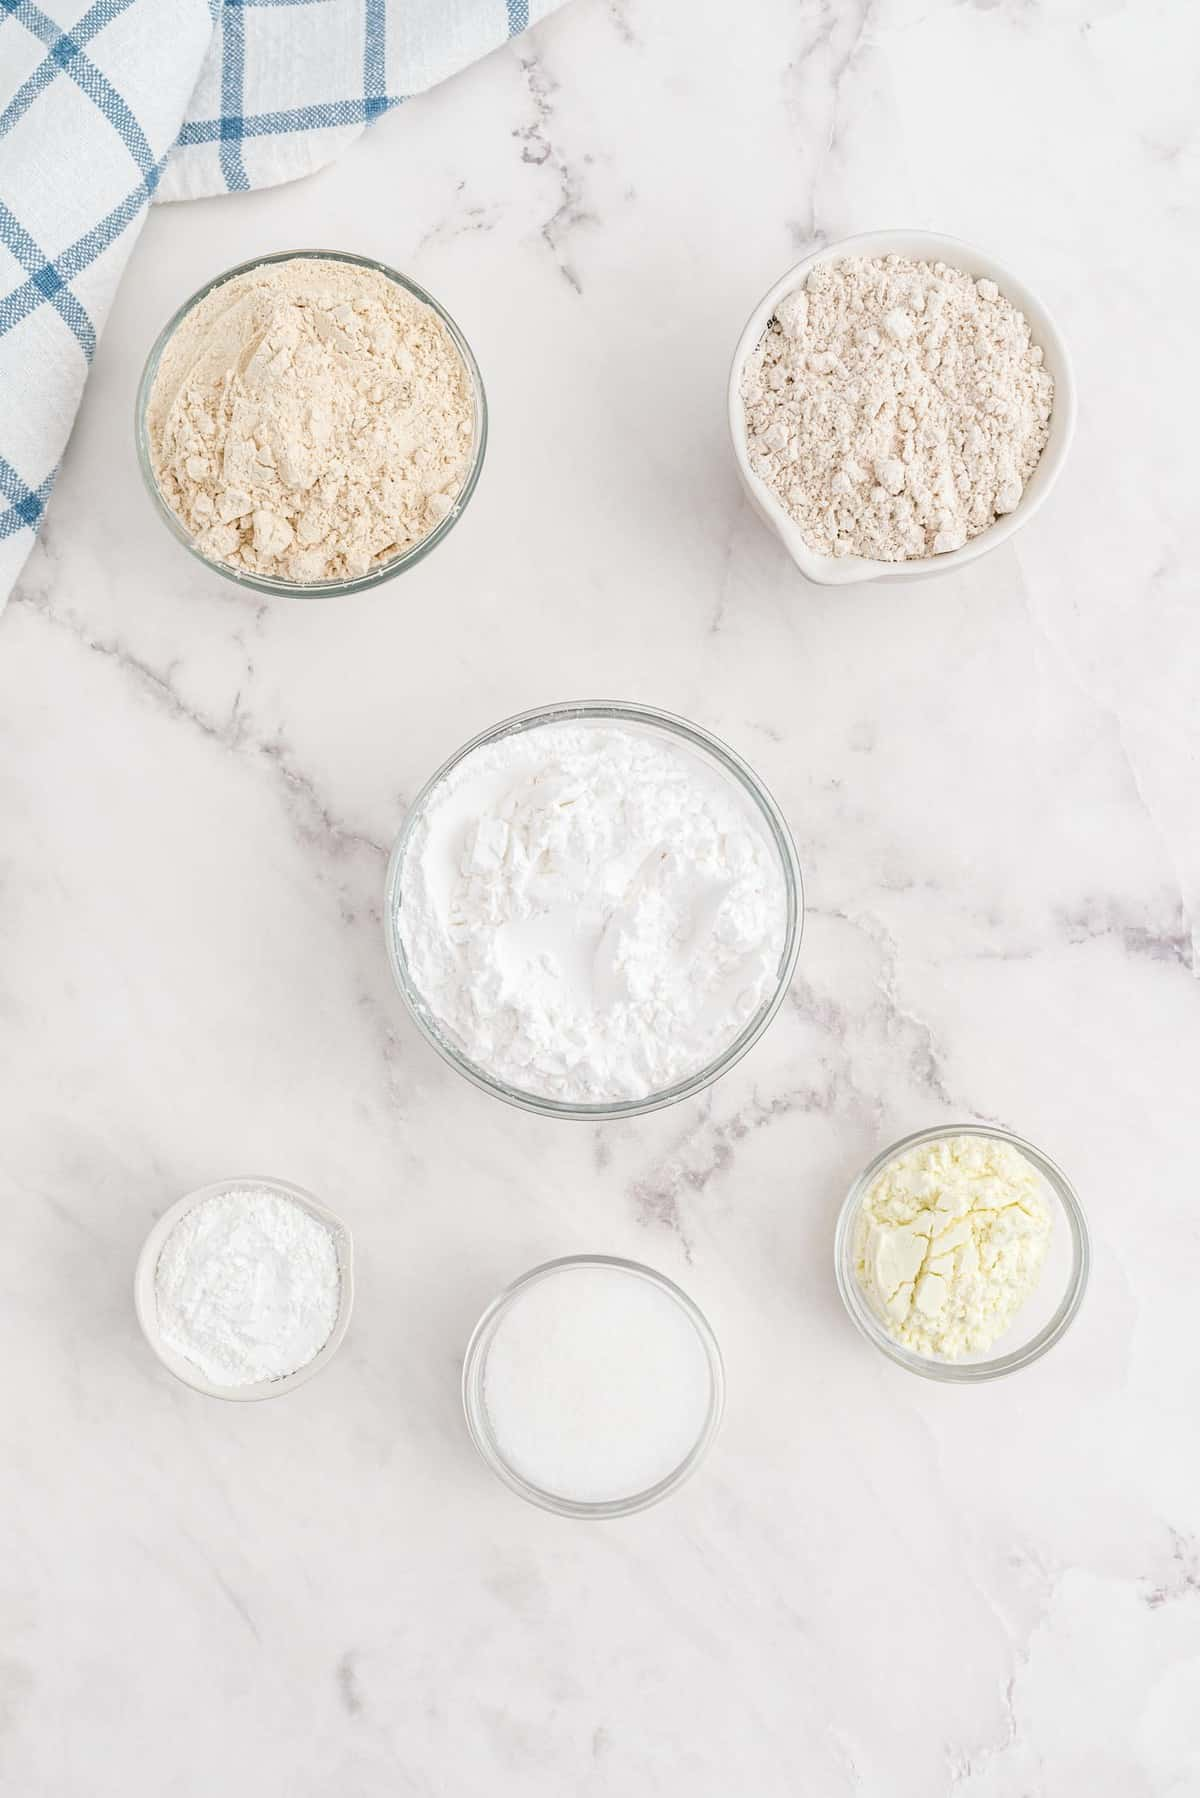 Overhead view of ingredients needed to make gluten-free pancake mix.